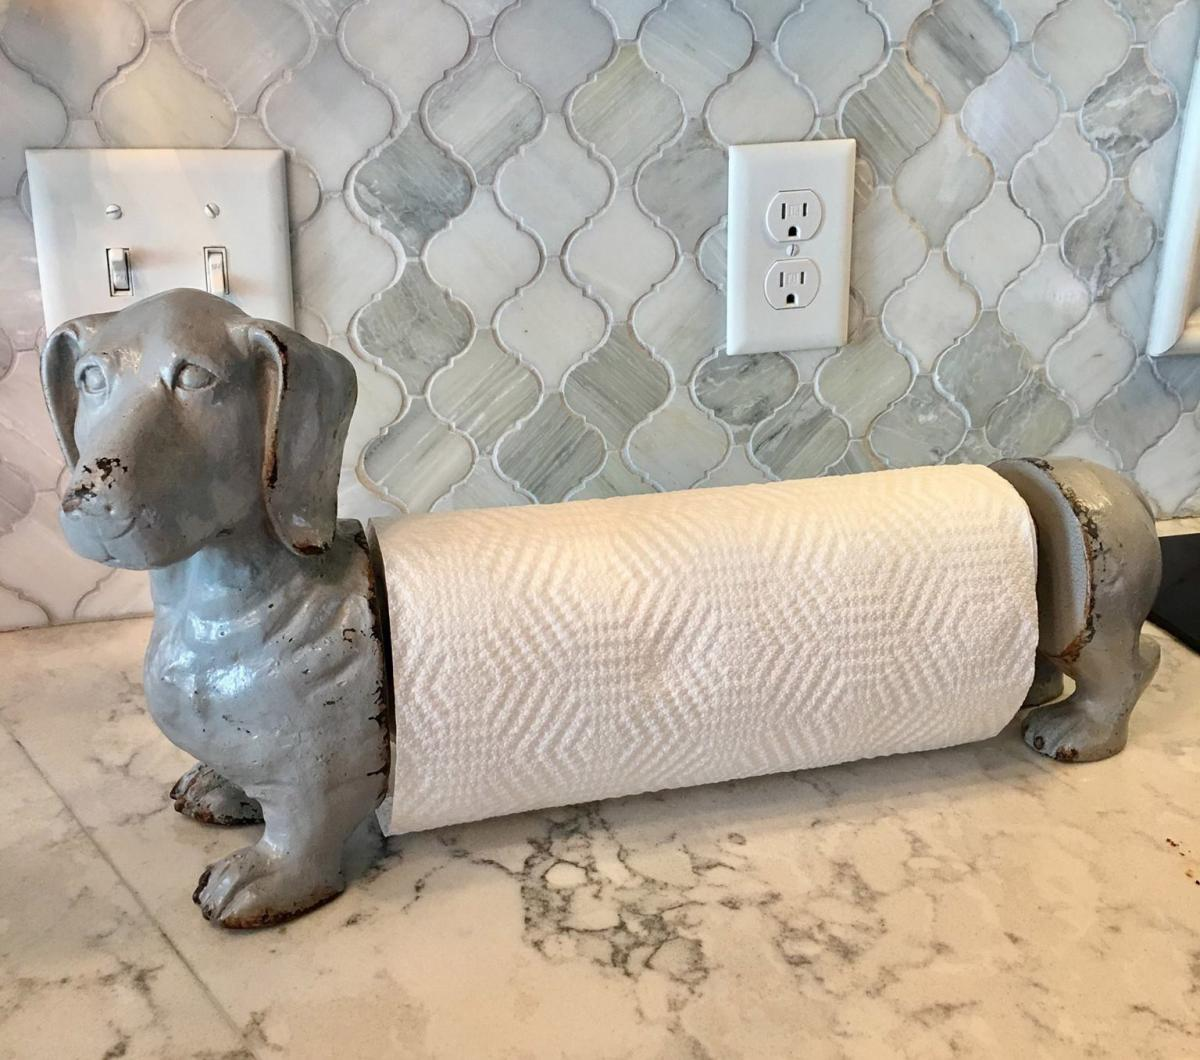 Dachshund Dog Paper Towel Holder - Wiener Dog Paper Towel Dispenser